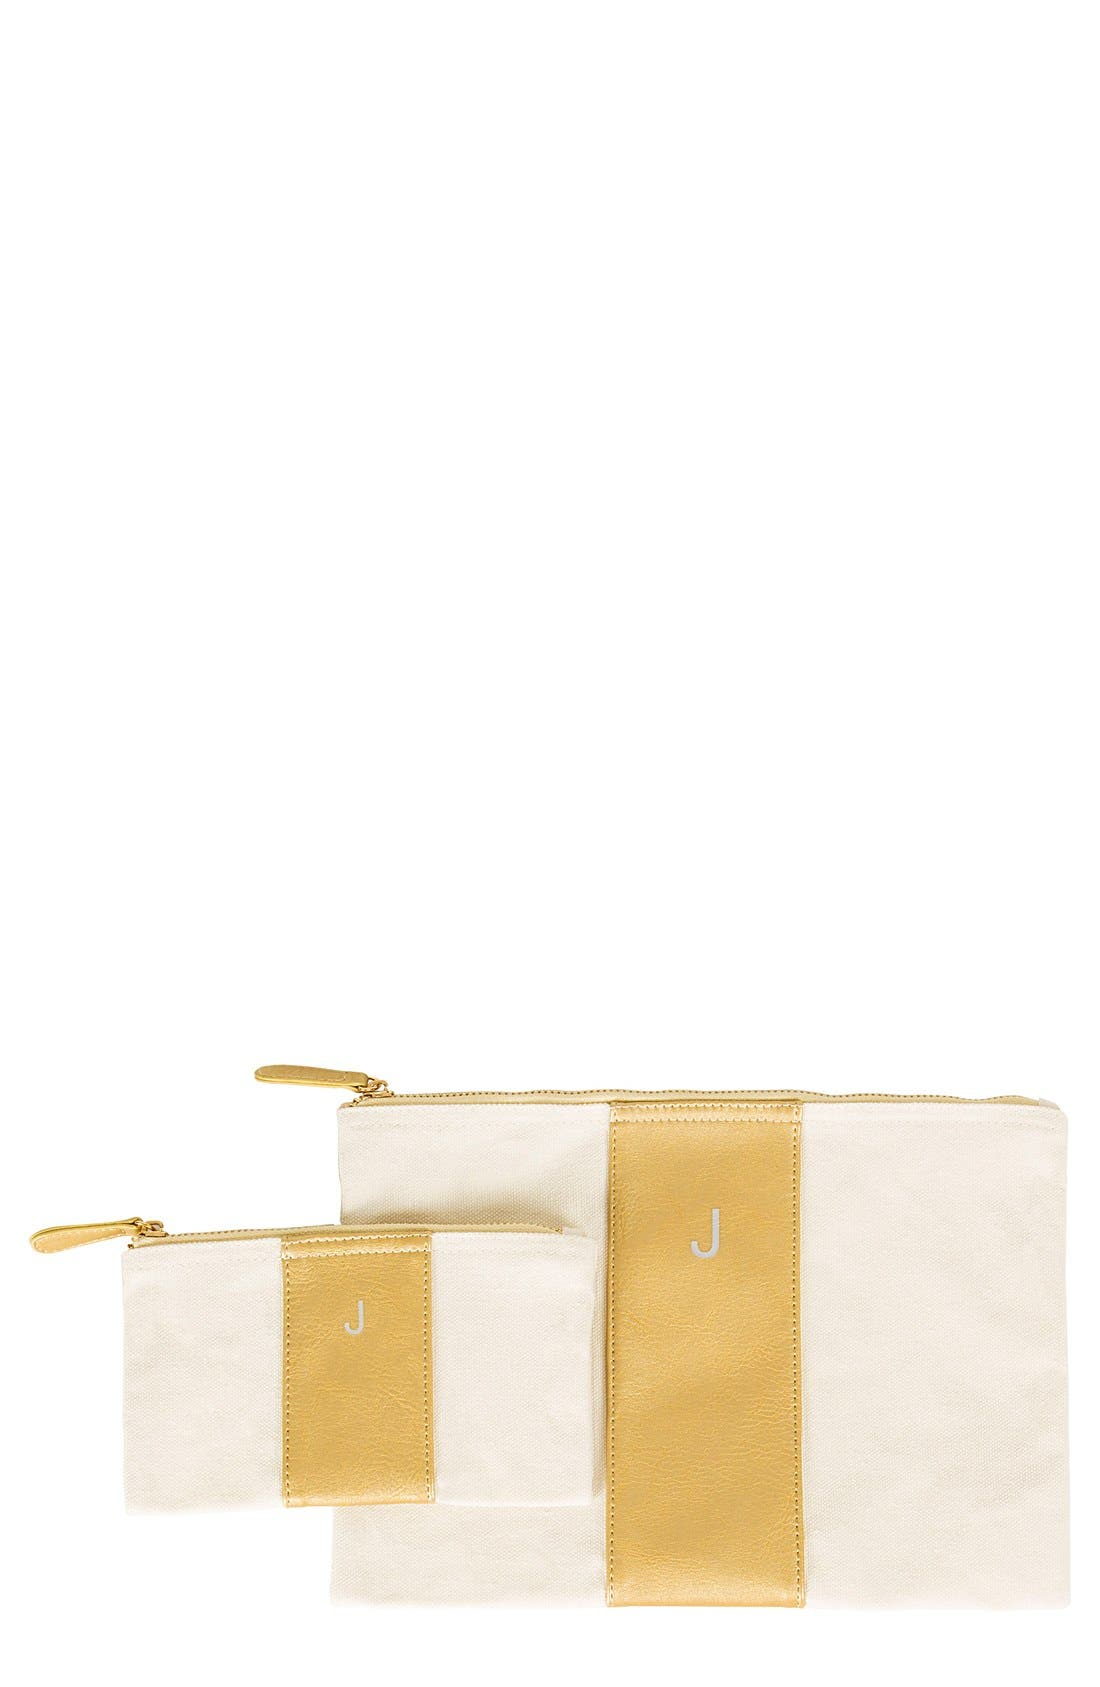 Personalized Faux Leather Clutch,                             Main thumbnail 28, color,